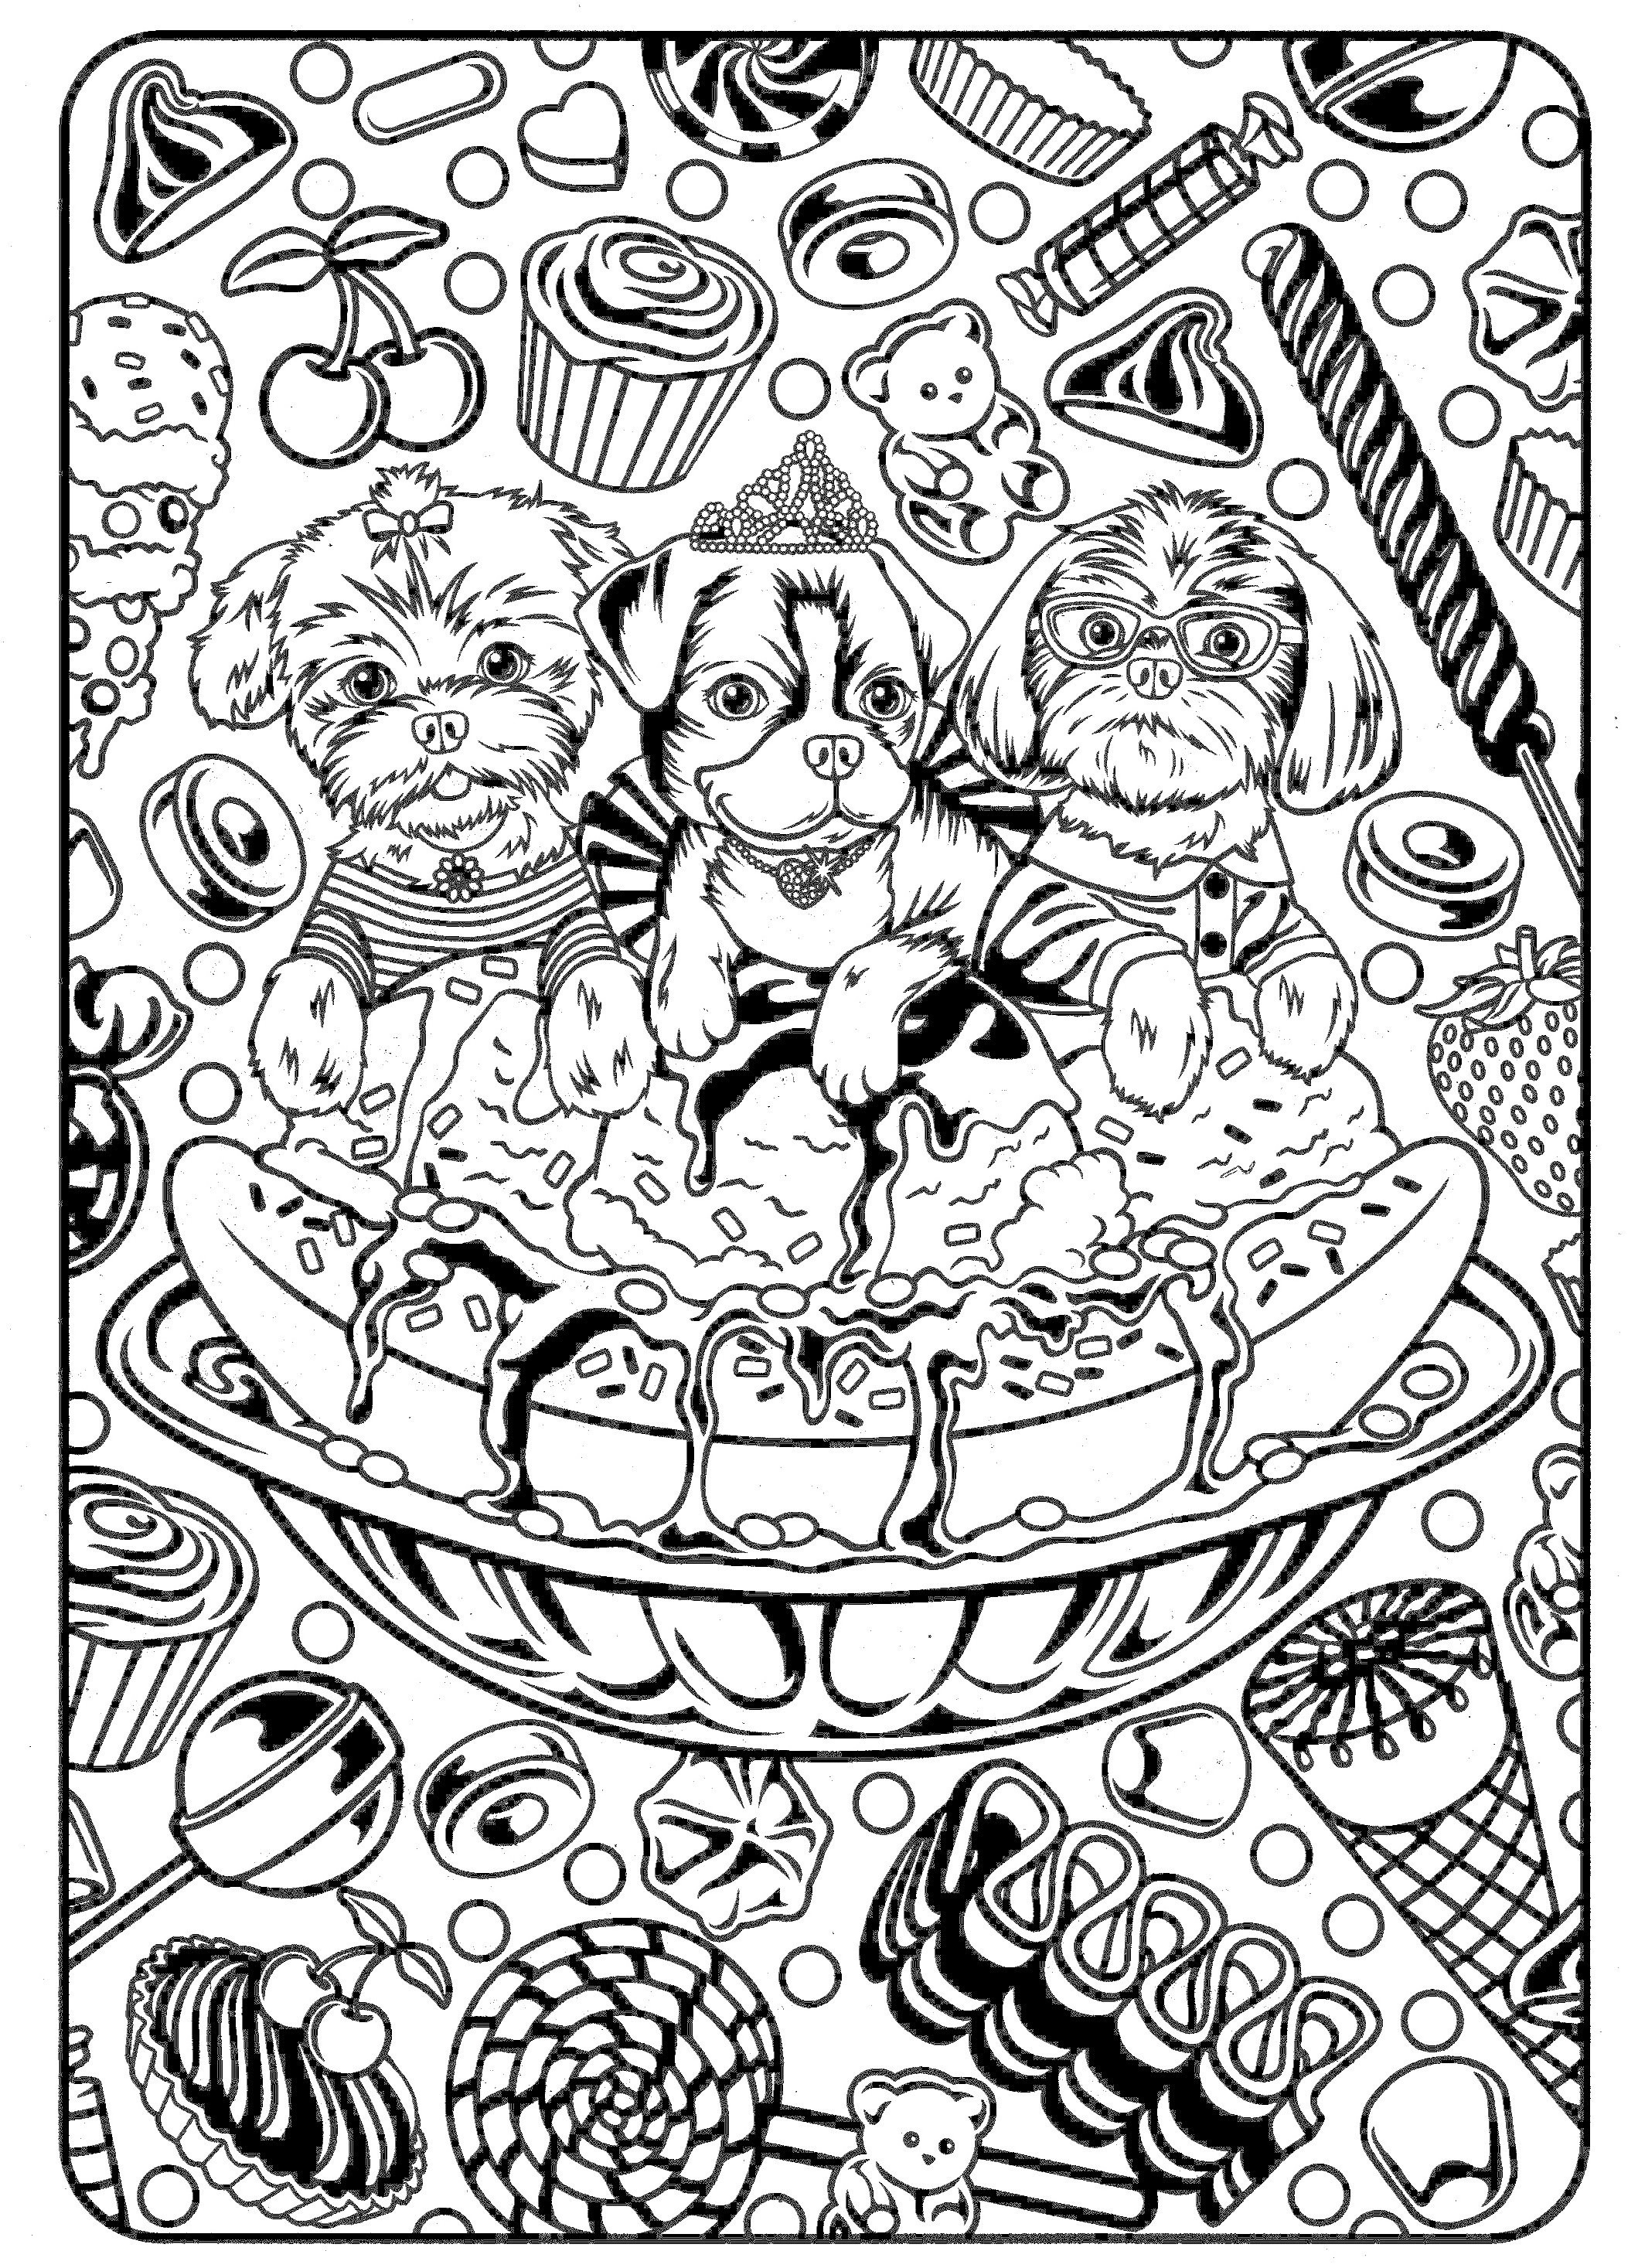 Mandala coloring pages online free printable mushroom coloring pages nature coloring pages inspirational printable mandalas